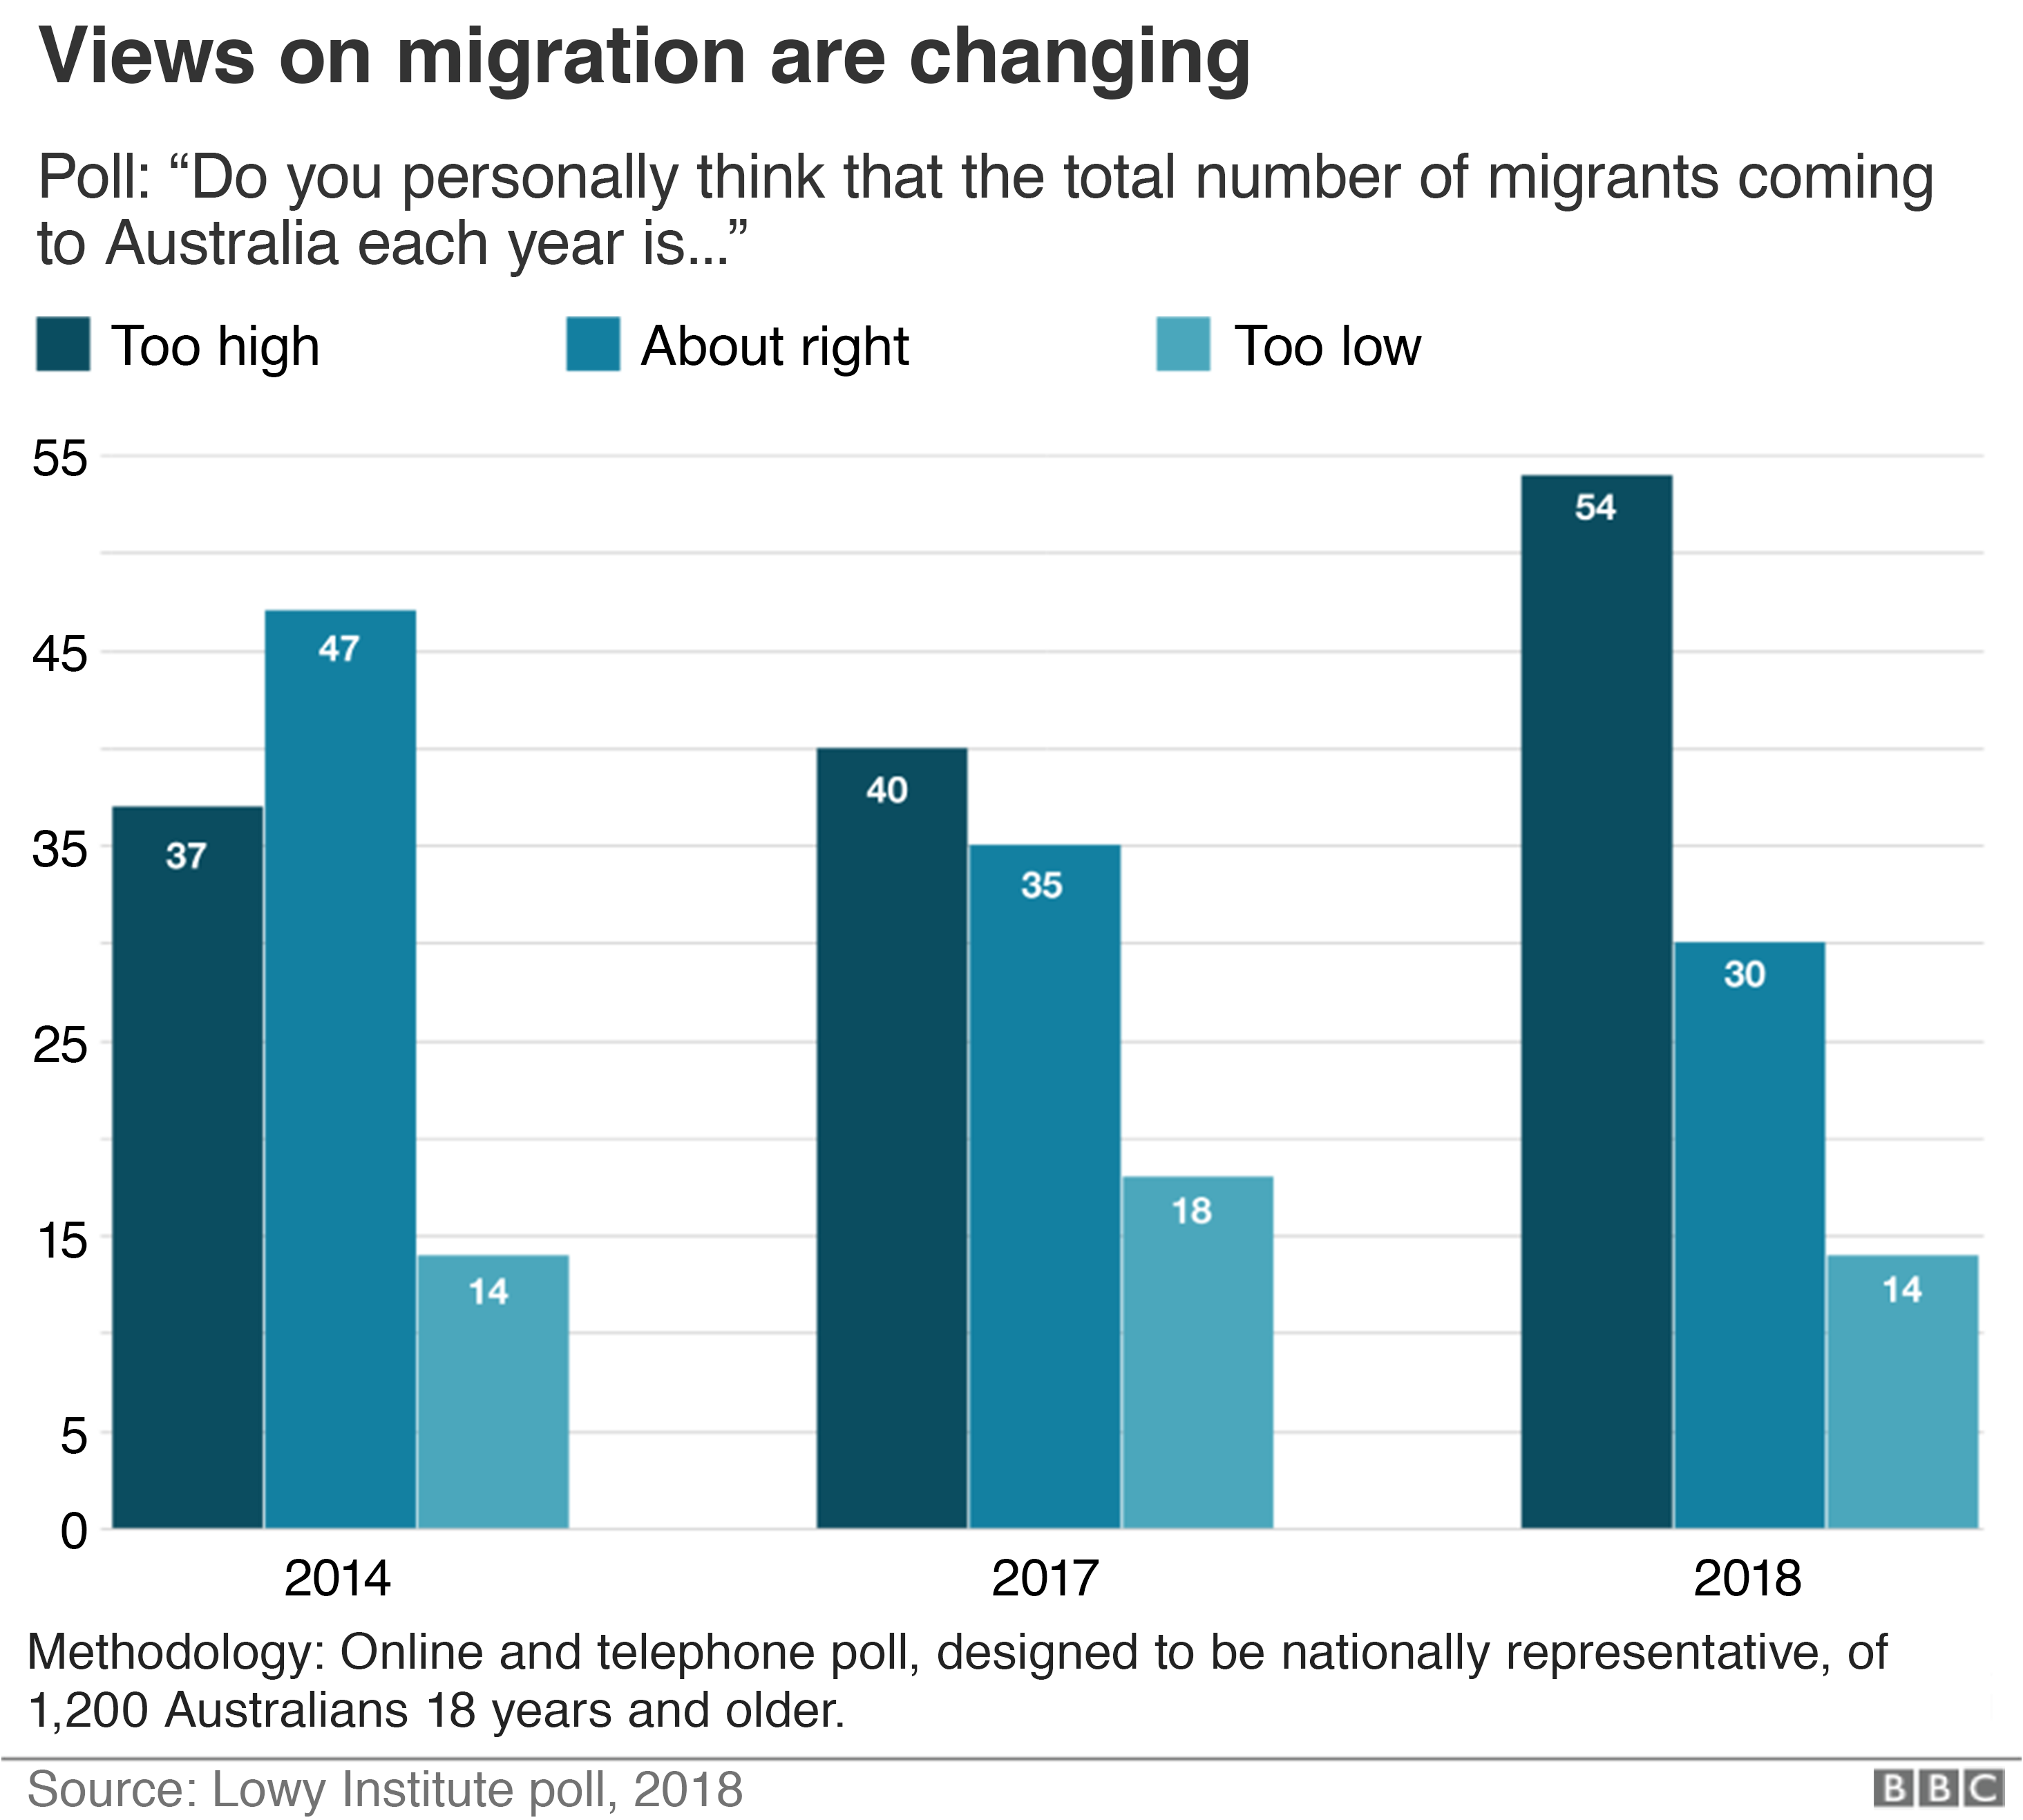 Graphic: Views on migration